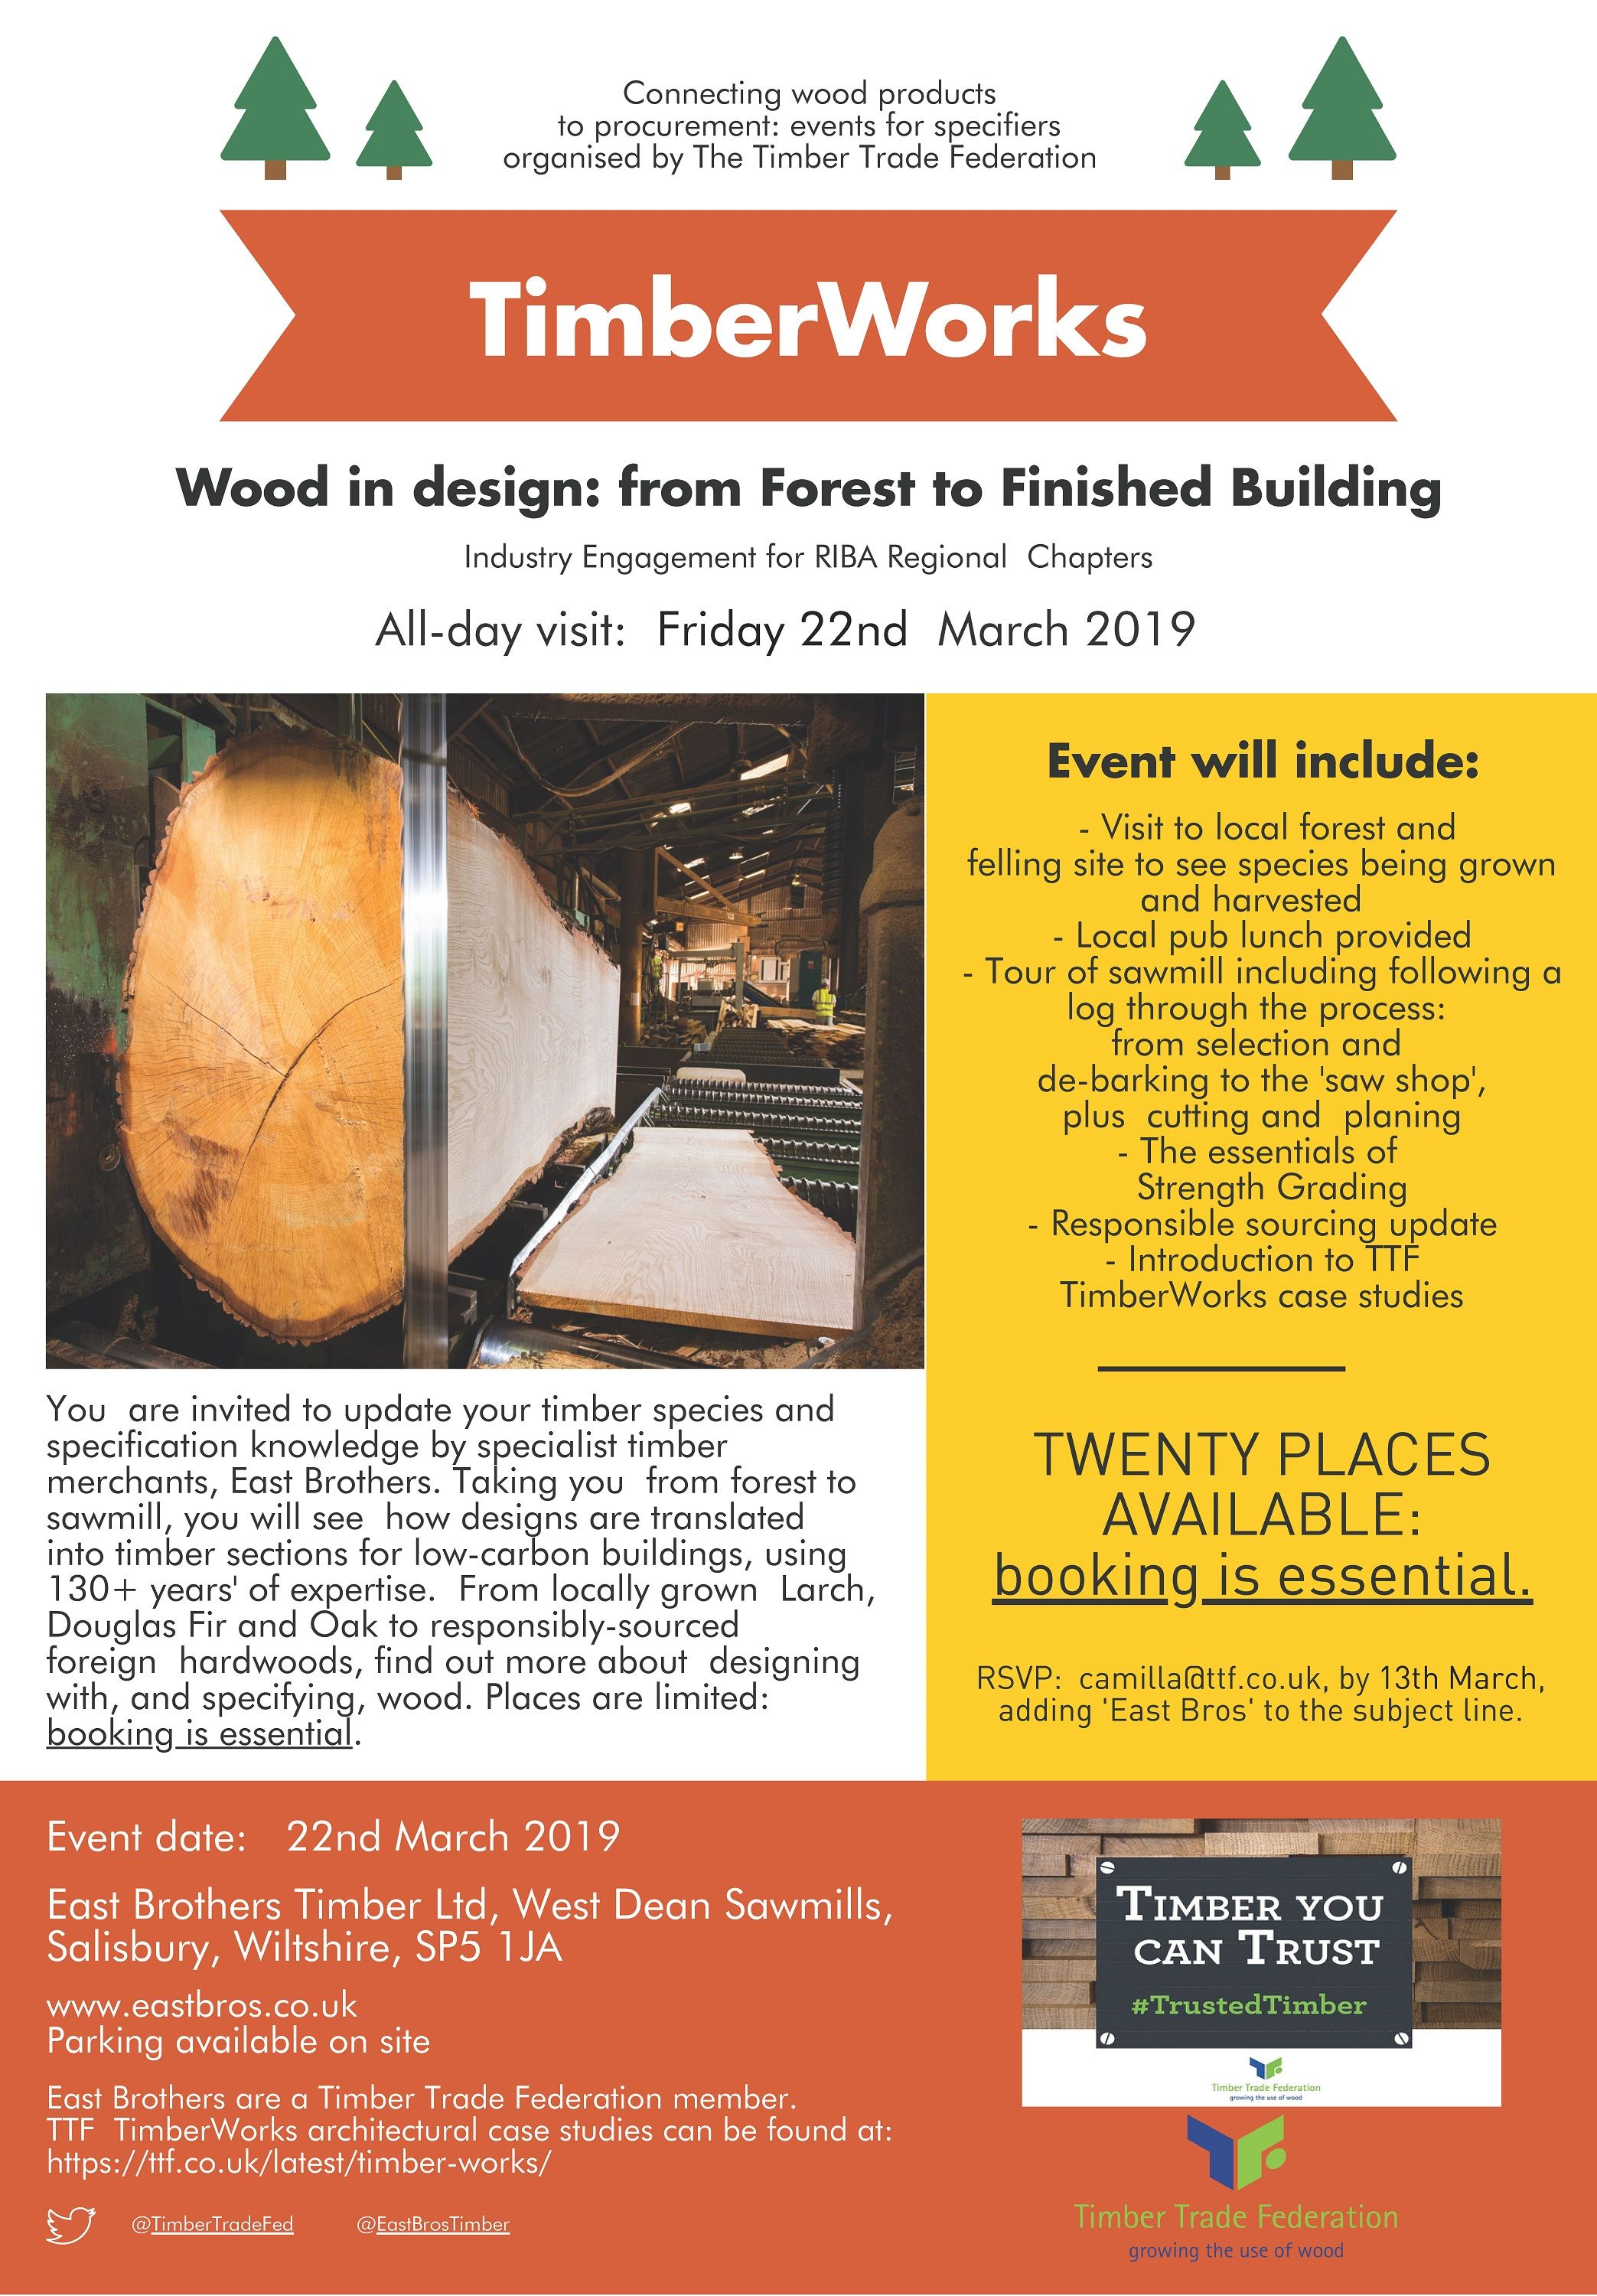 Wood in design: from Forest to Finished Building - Timber